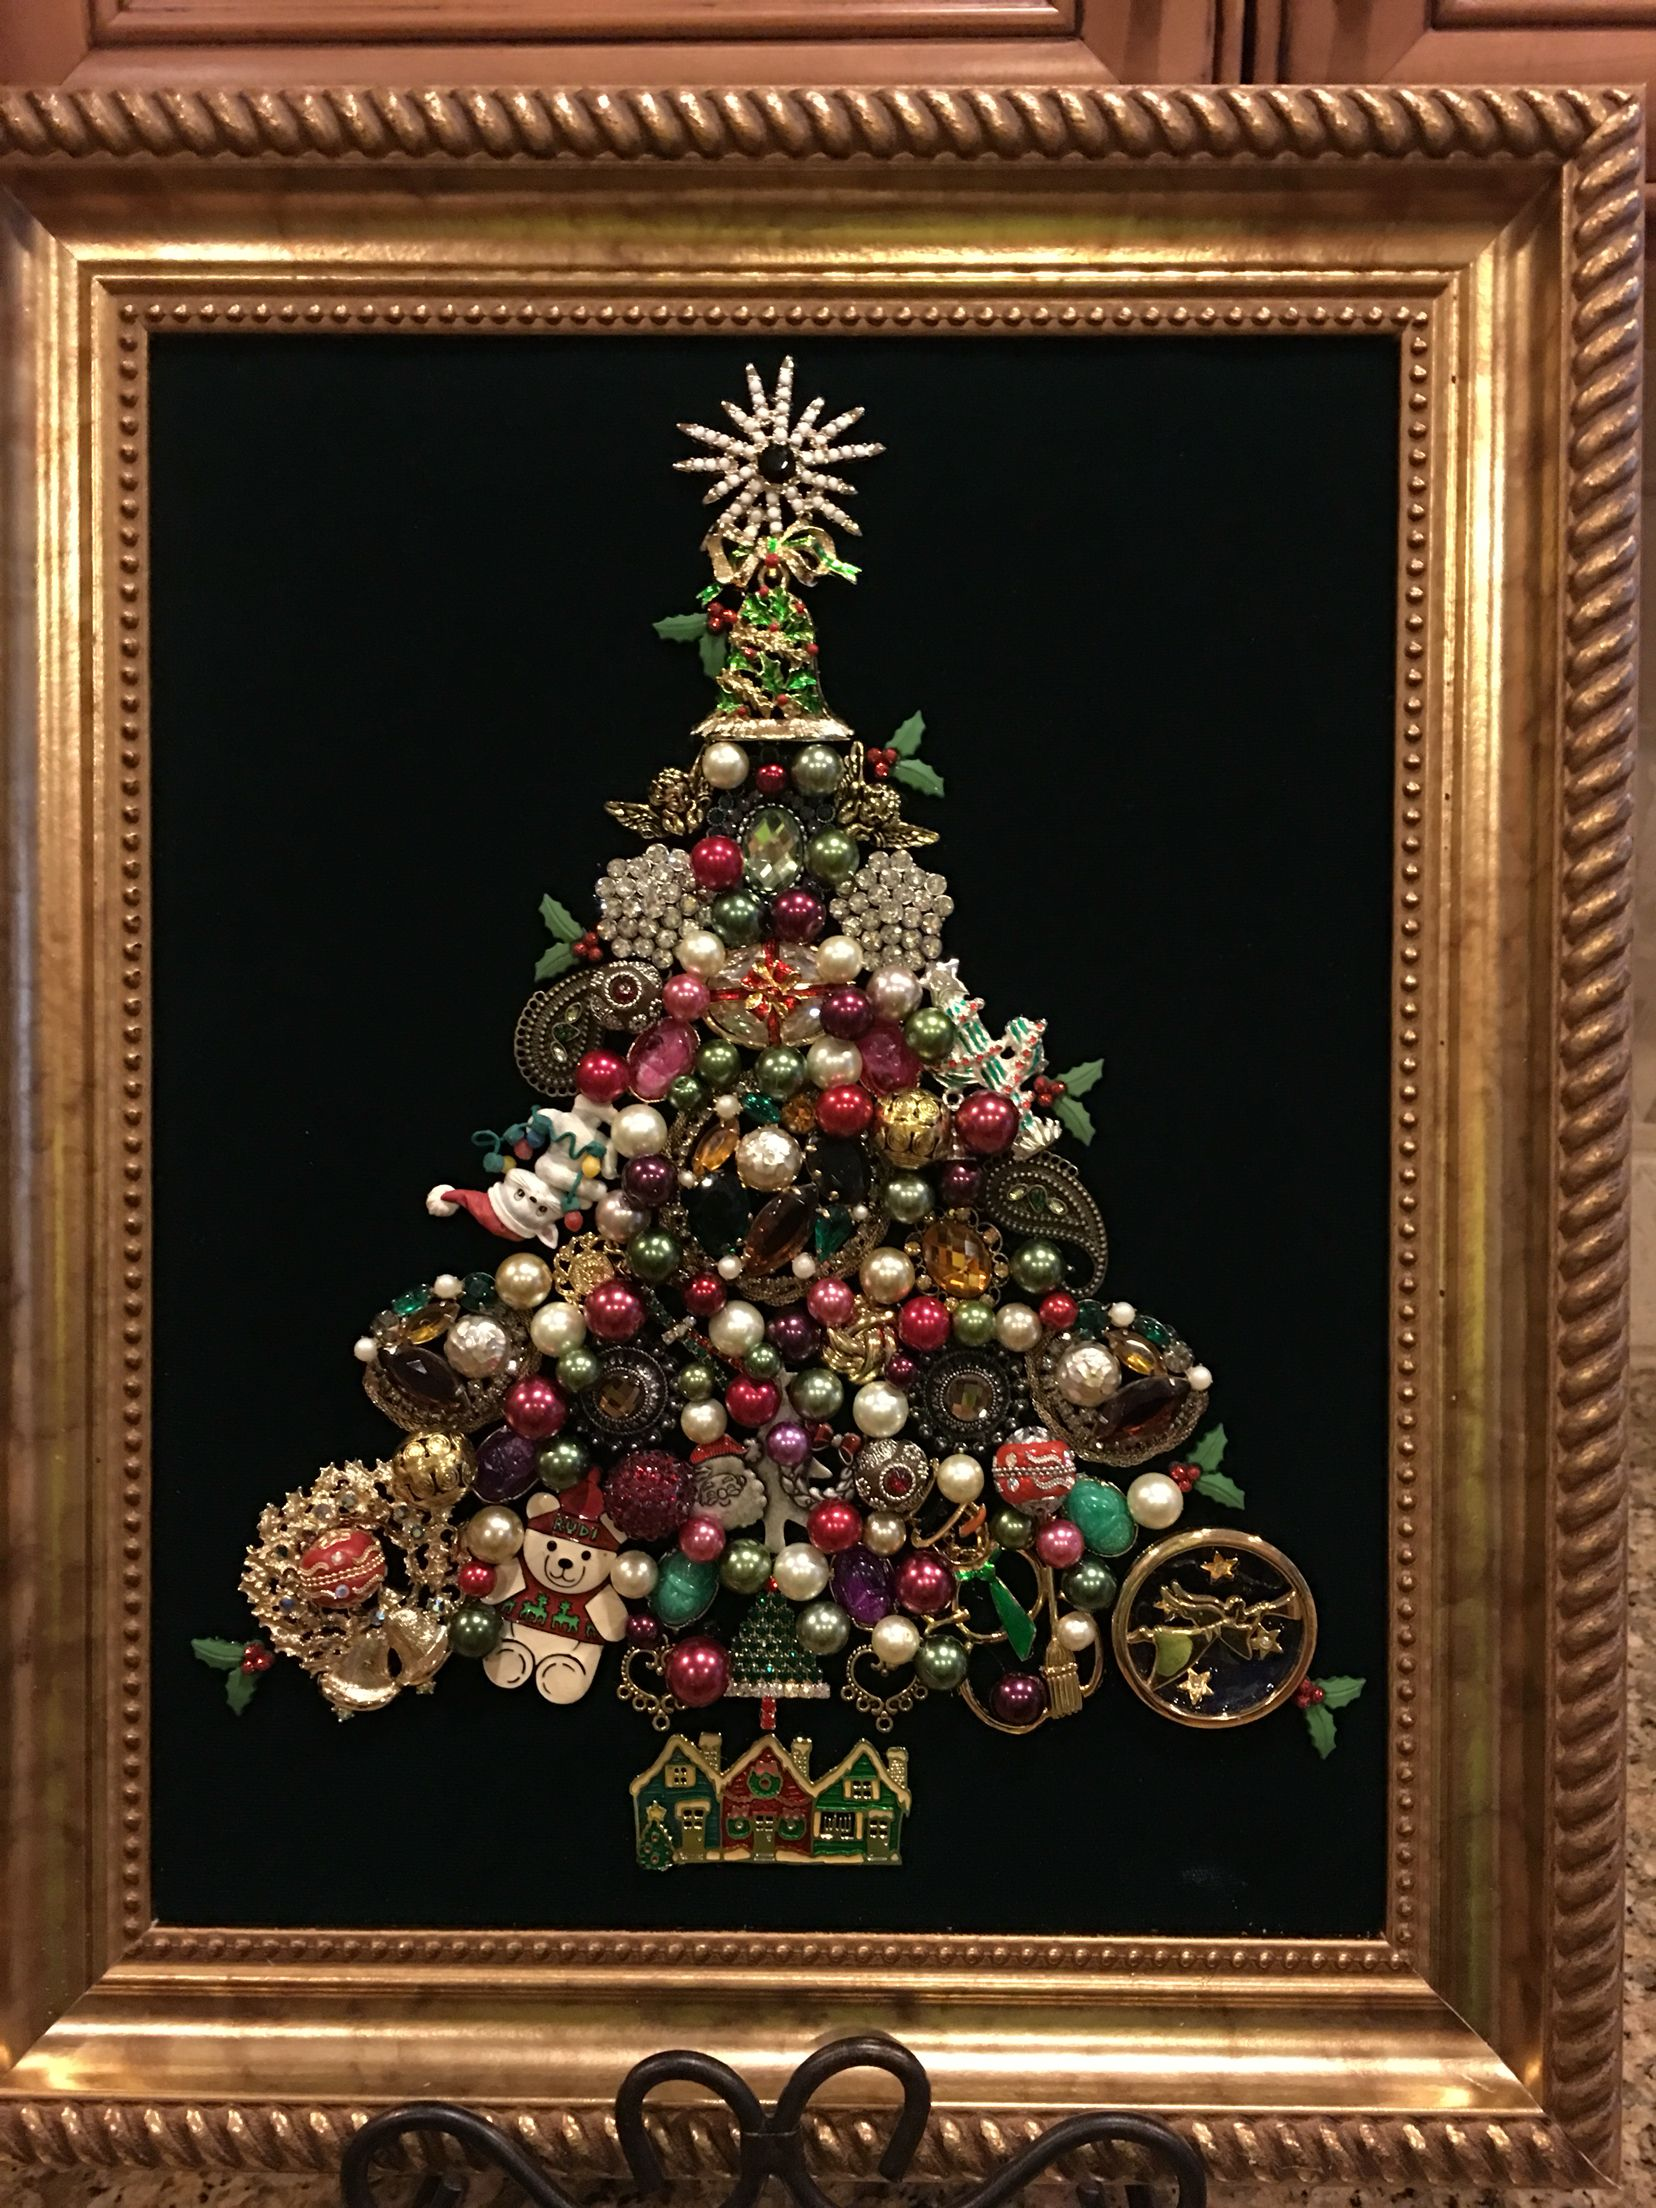 11x14 christmas tree old and new jewelry. By Beth Turchi 2016. | My ...